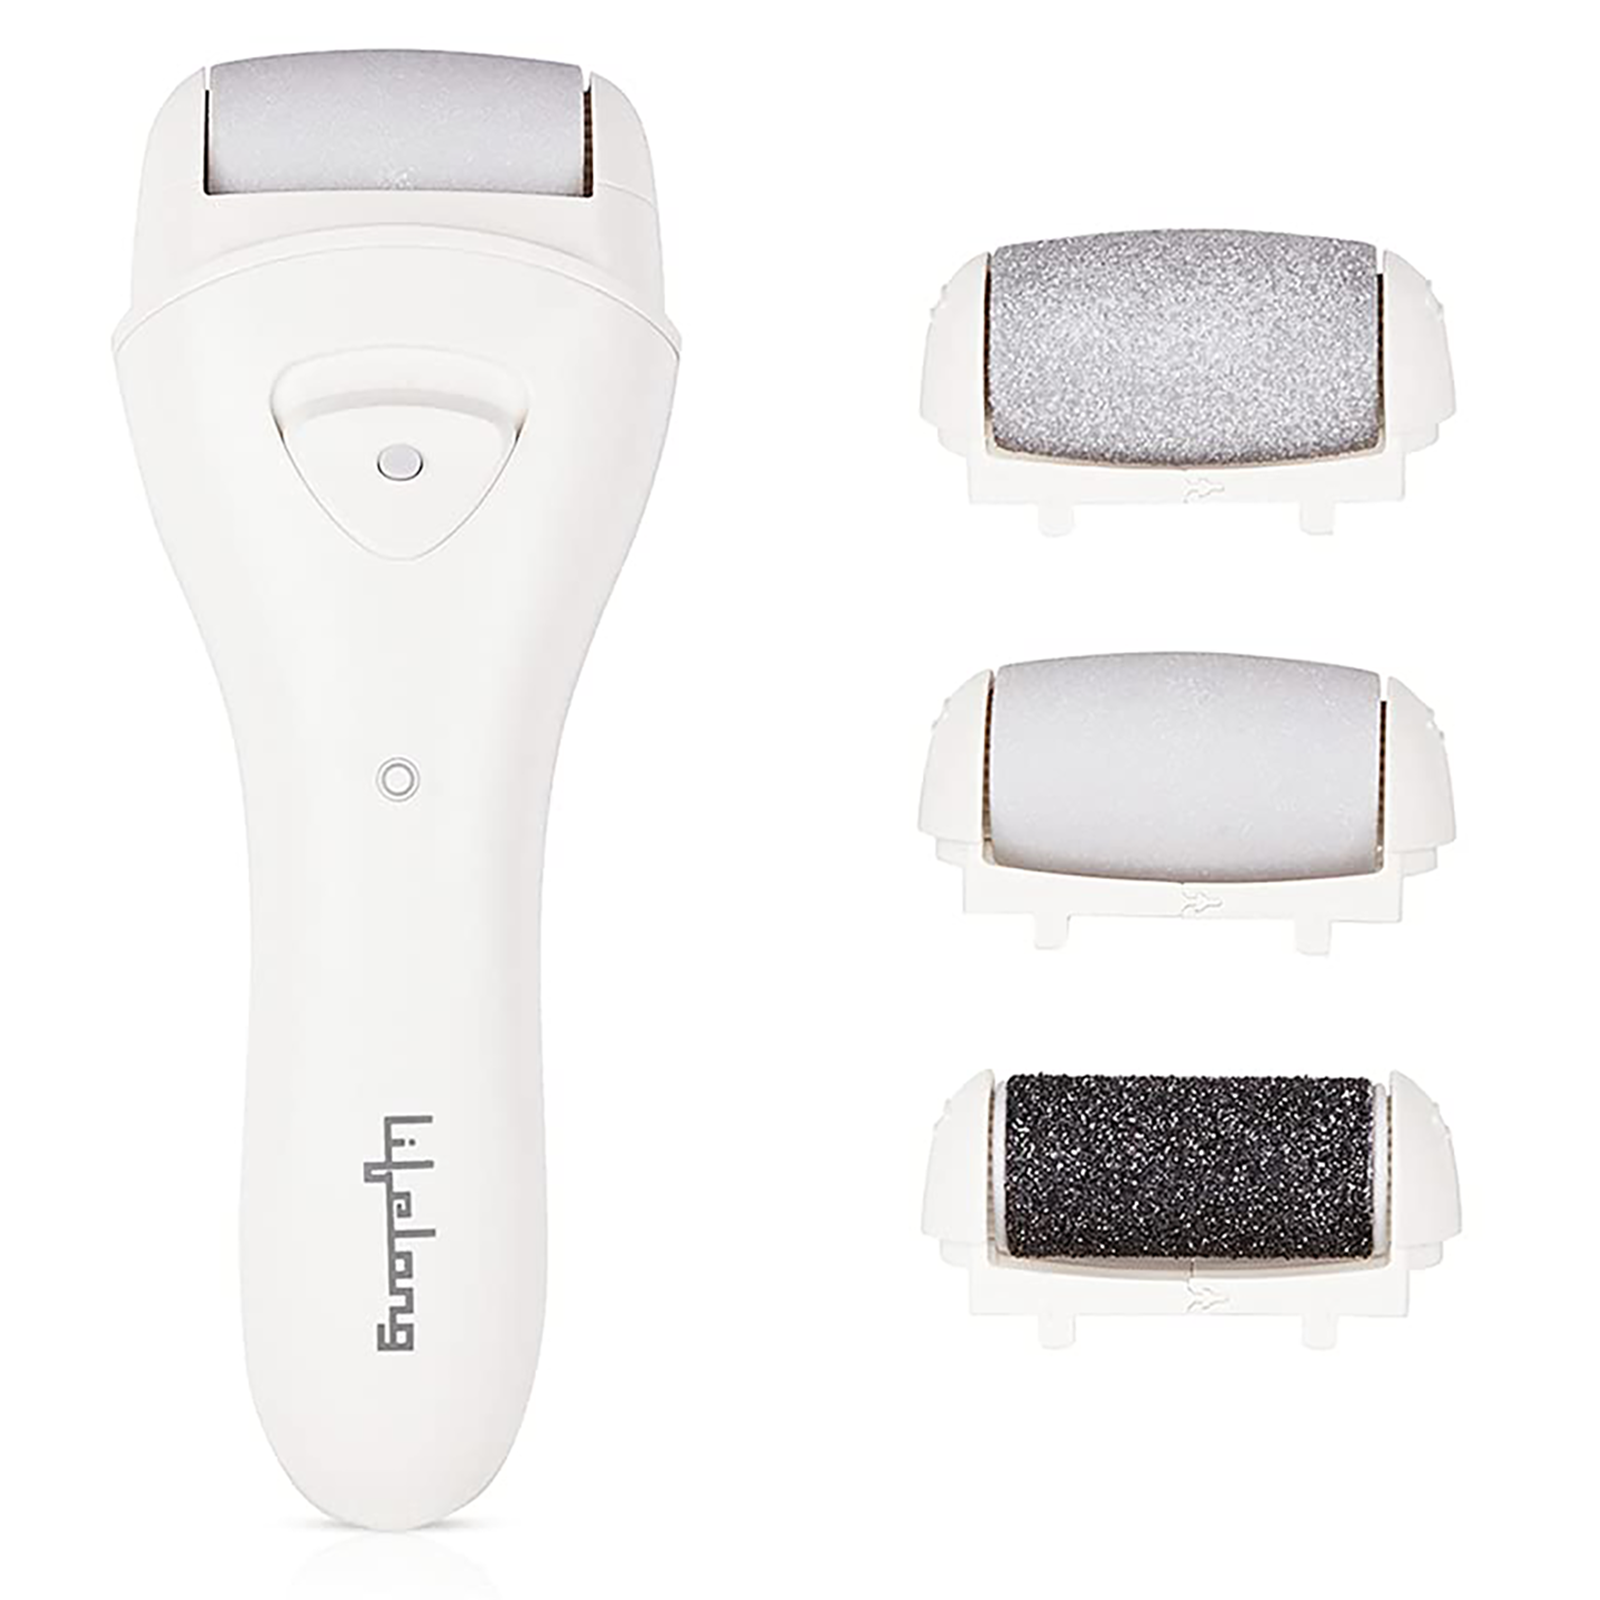 Lifelong Rechargeable Pedicure Device (LLPCW04, White)_1